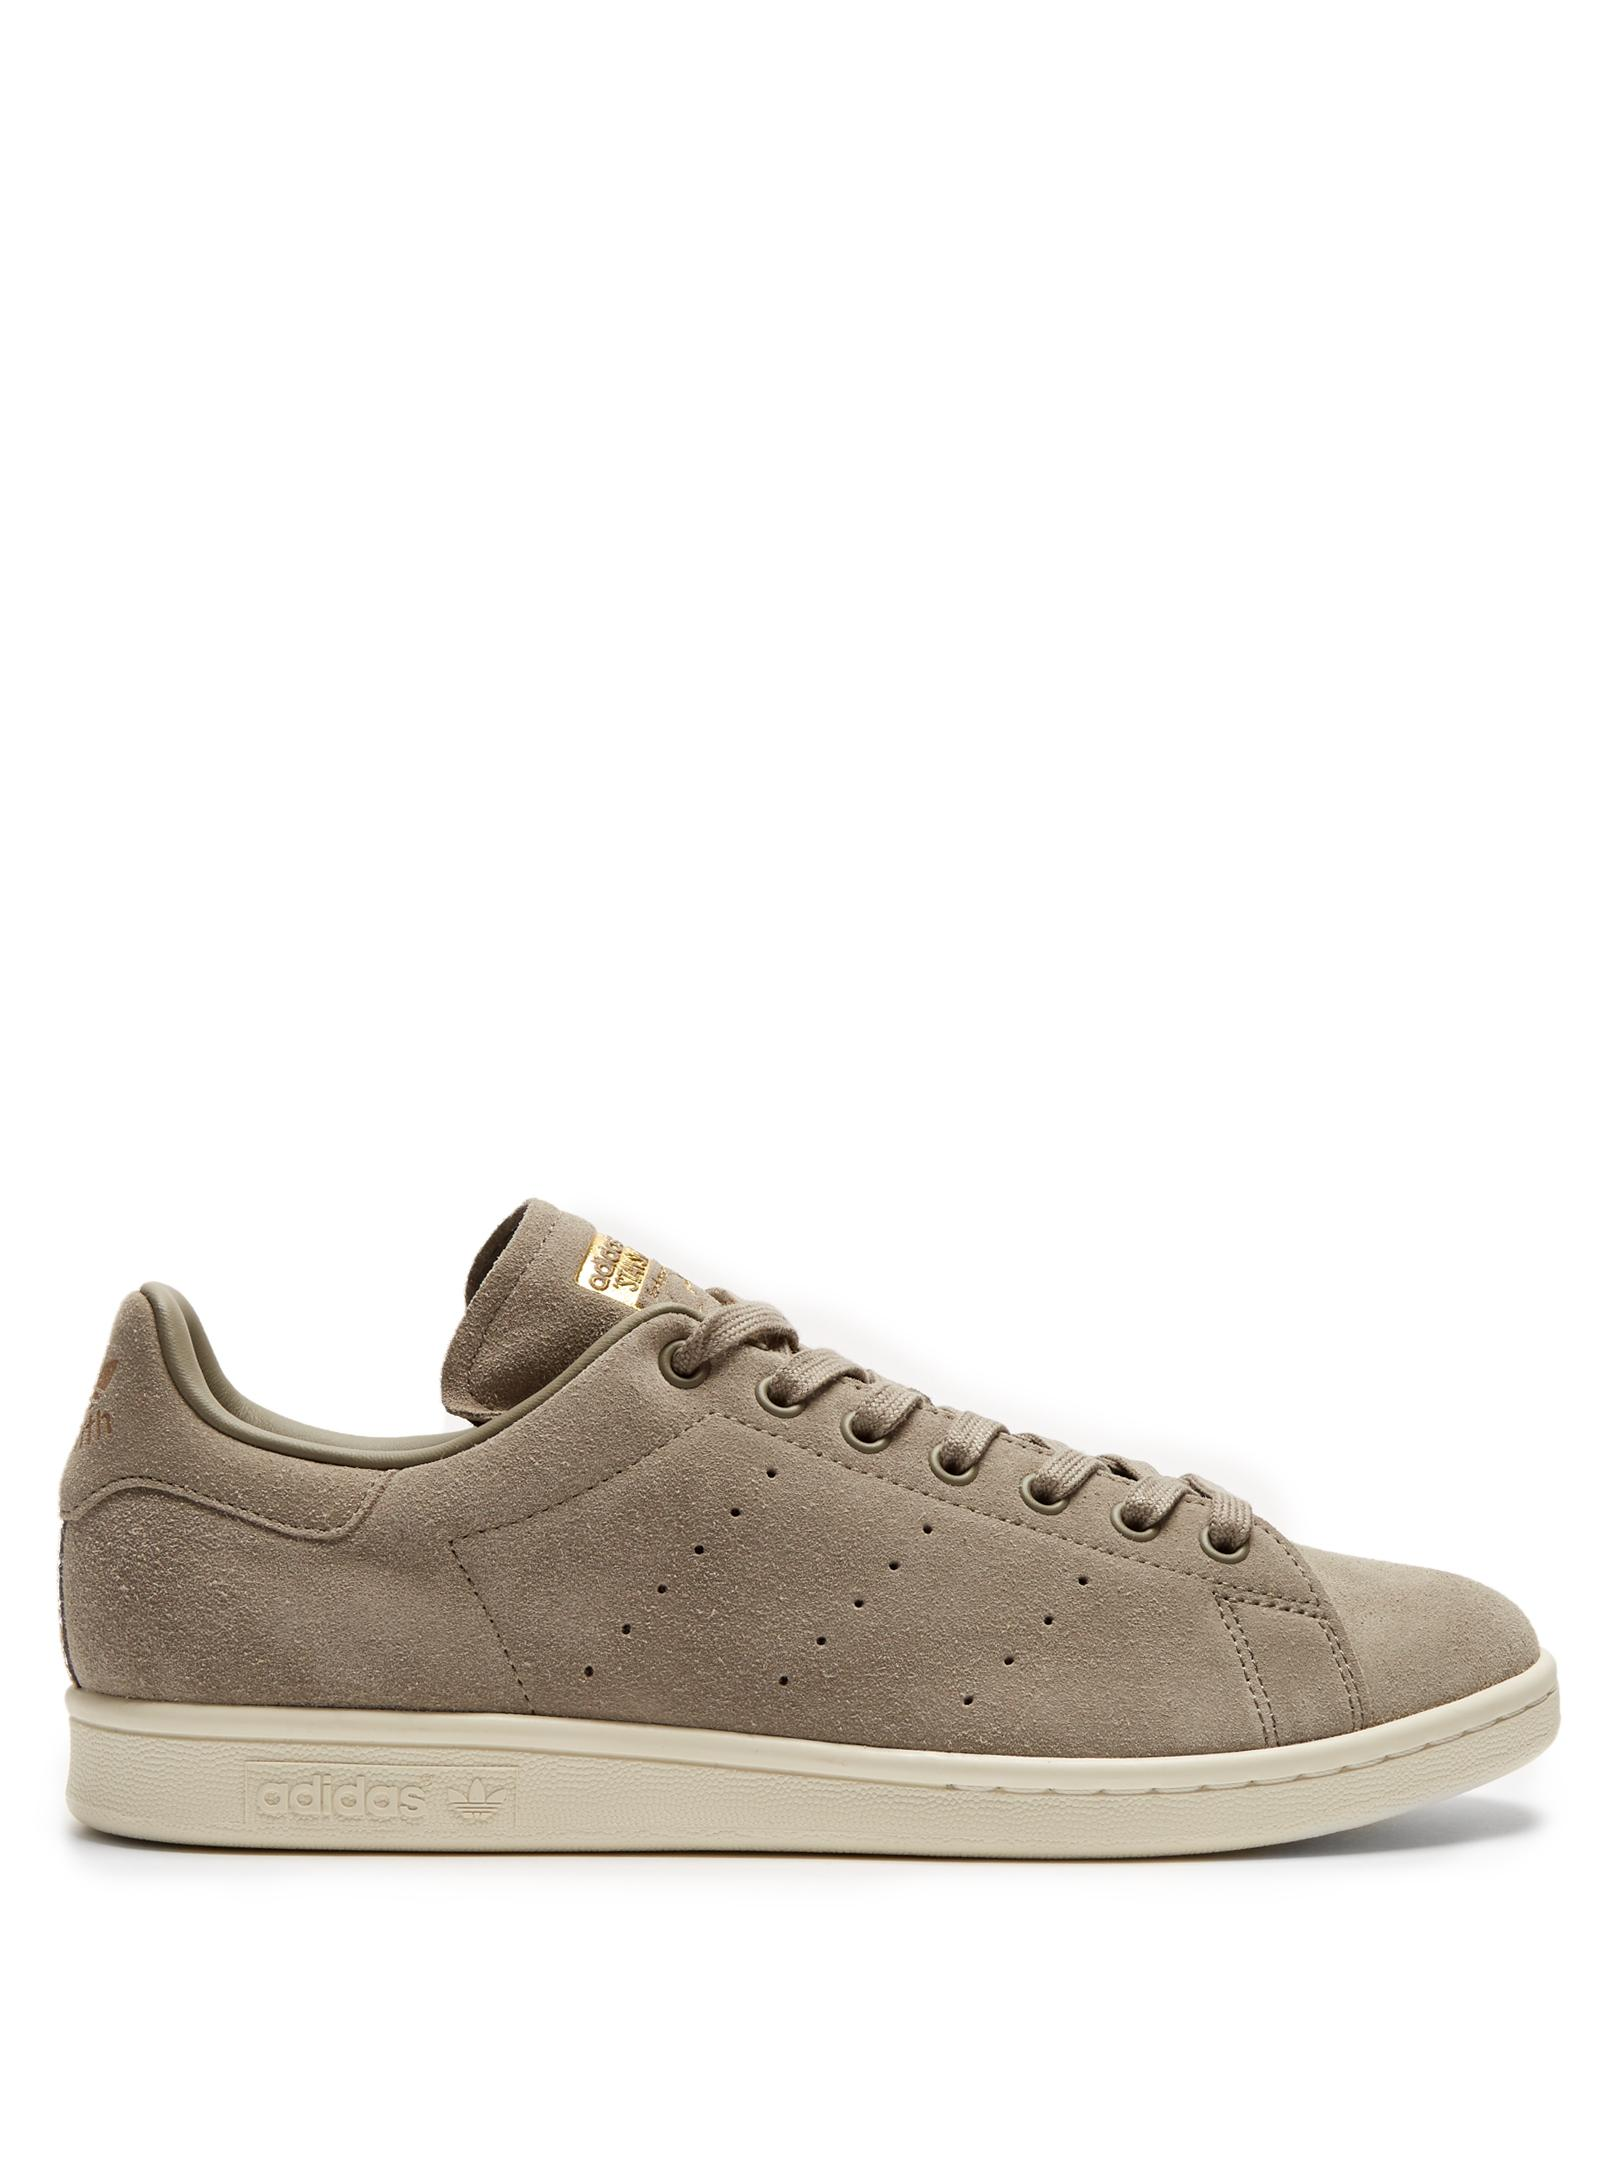 Are Farah Shoes True To Size